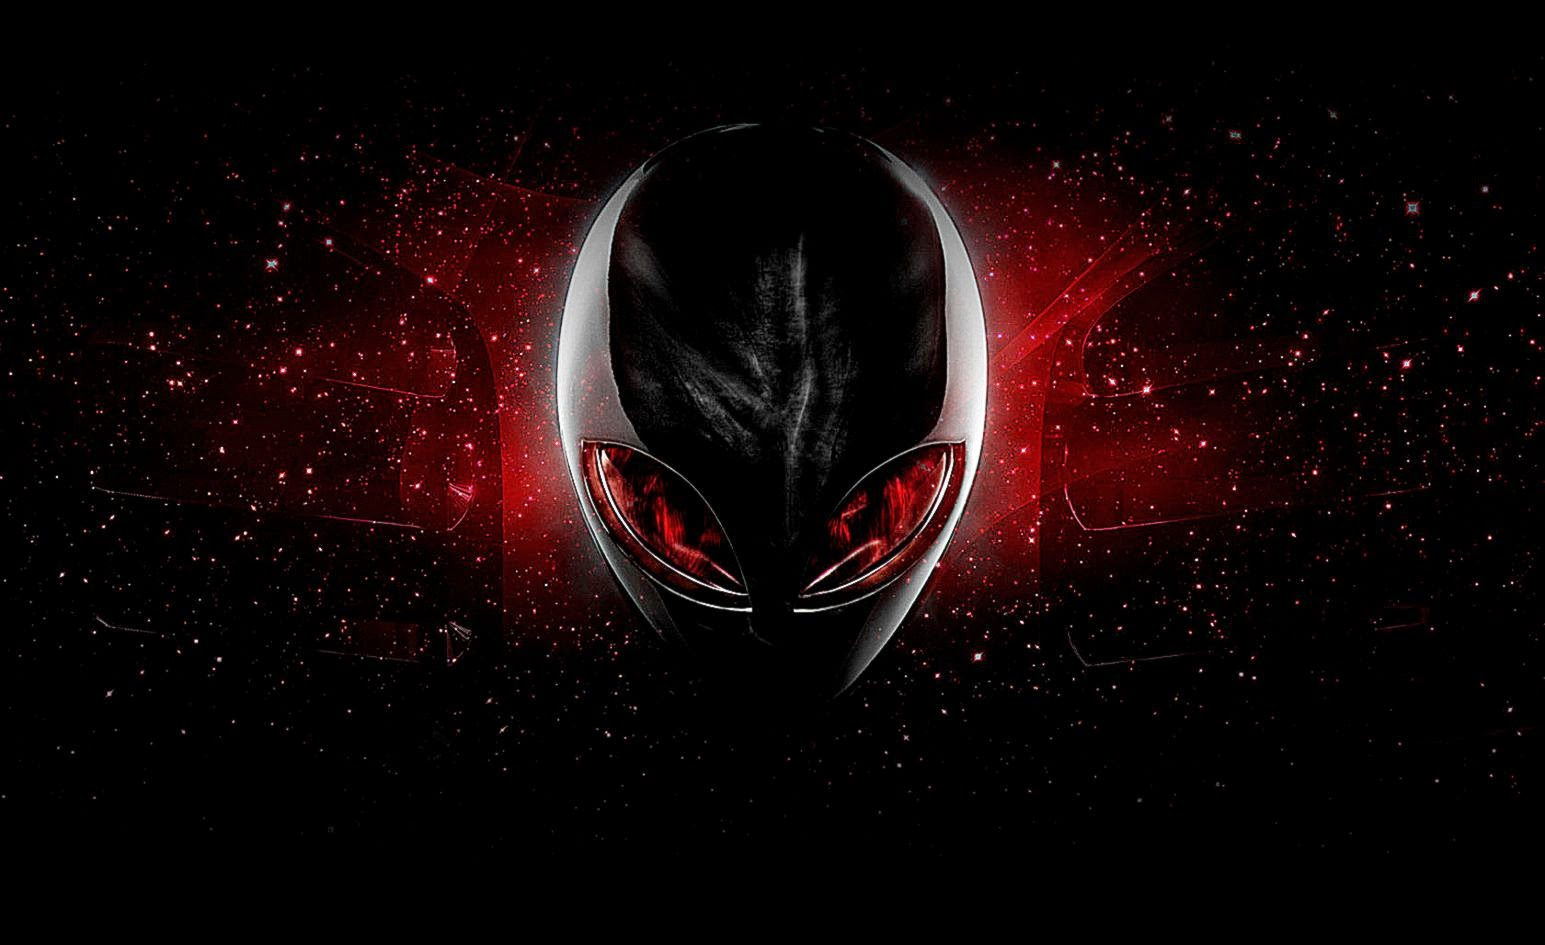 Alienware Red Wallpaper 484 Download Best HD Desktop Wallpapers 1545x945